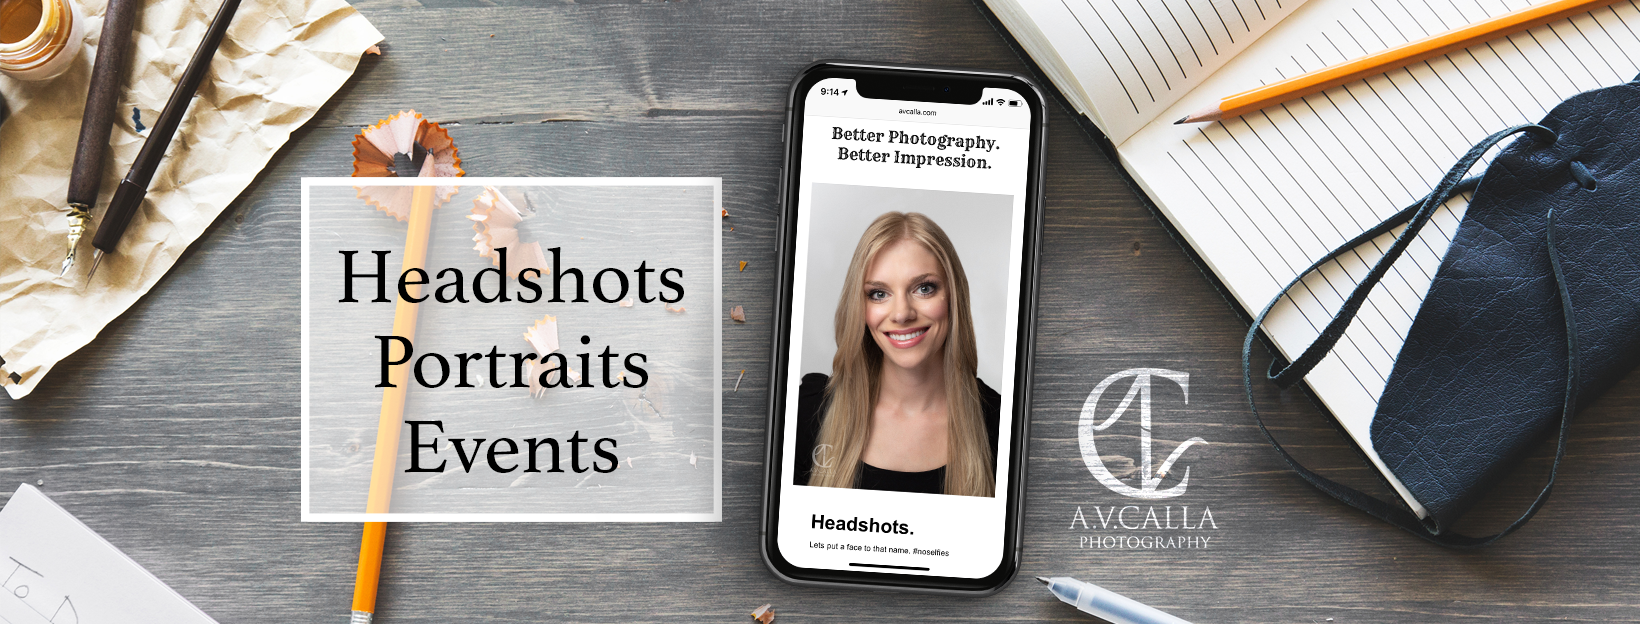 Scottsdale Arizona Portrait and Headshot Photographer